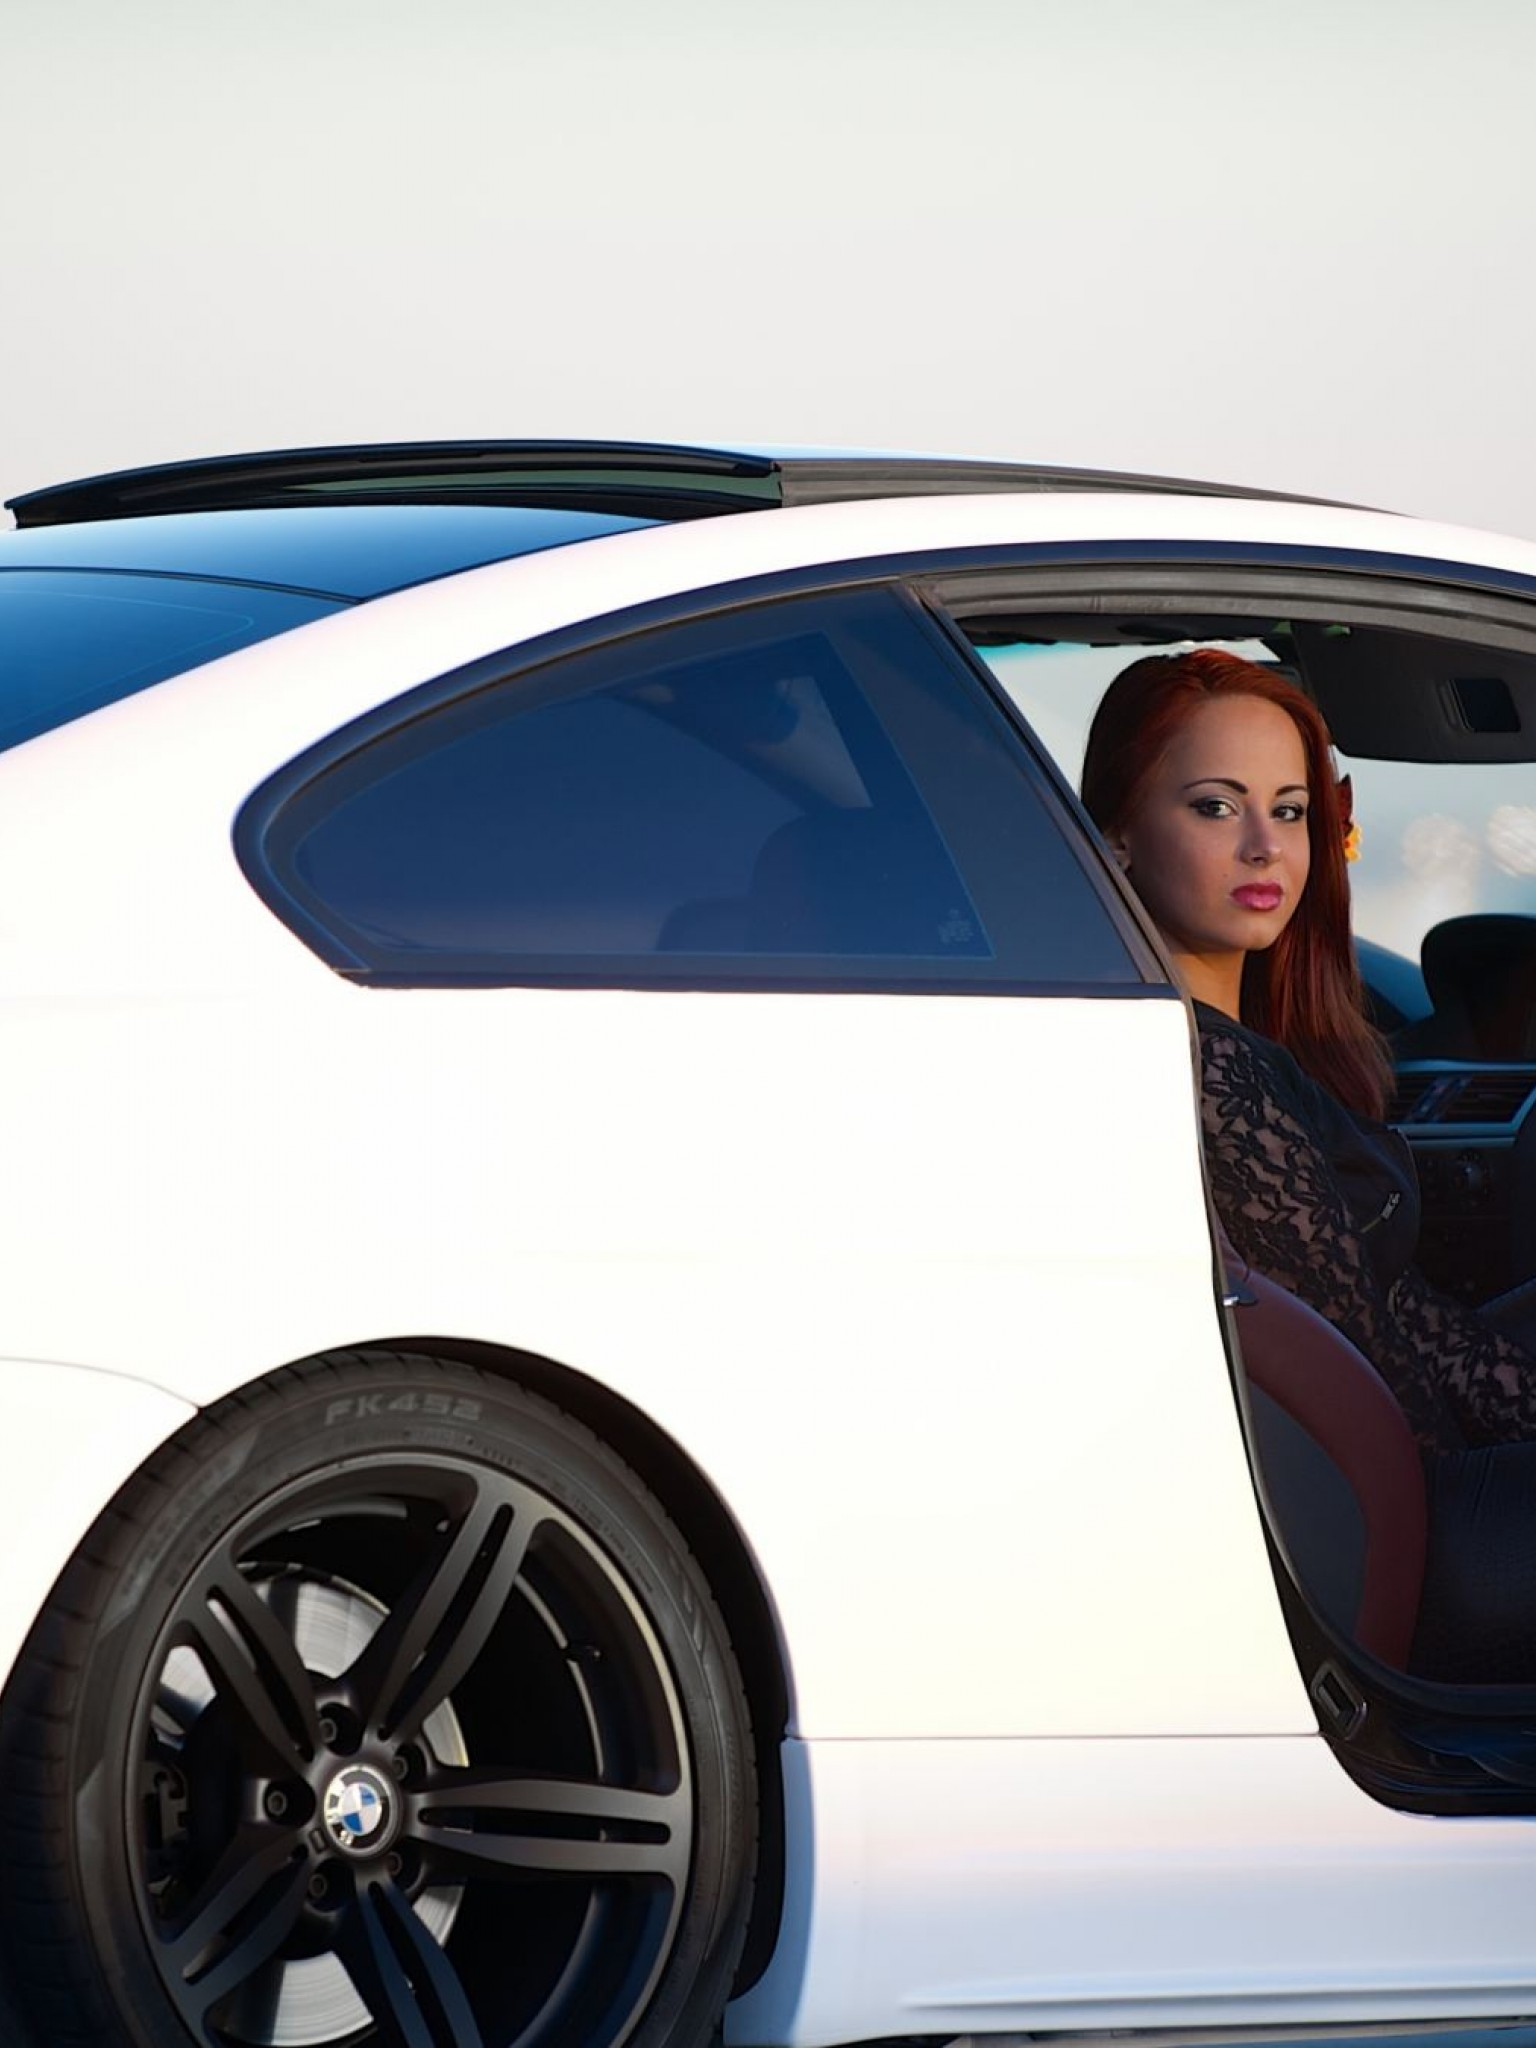 White Bmw M6 Car Hd Wallpaper for Desktop and Mobiles ...